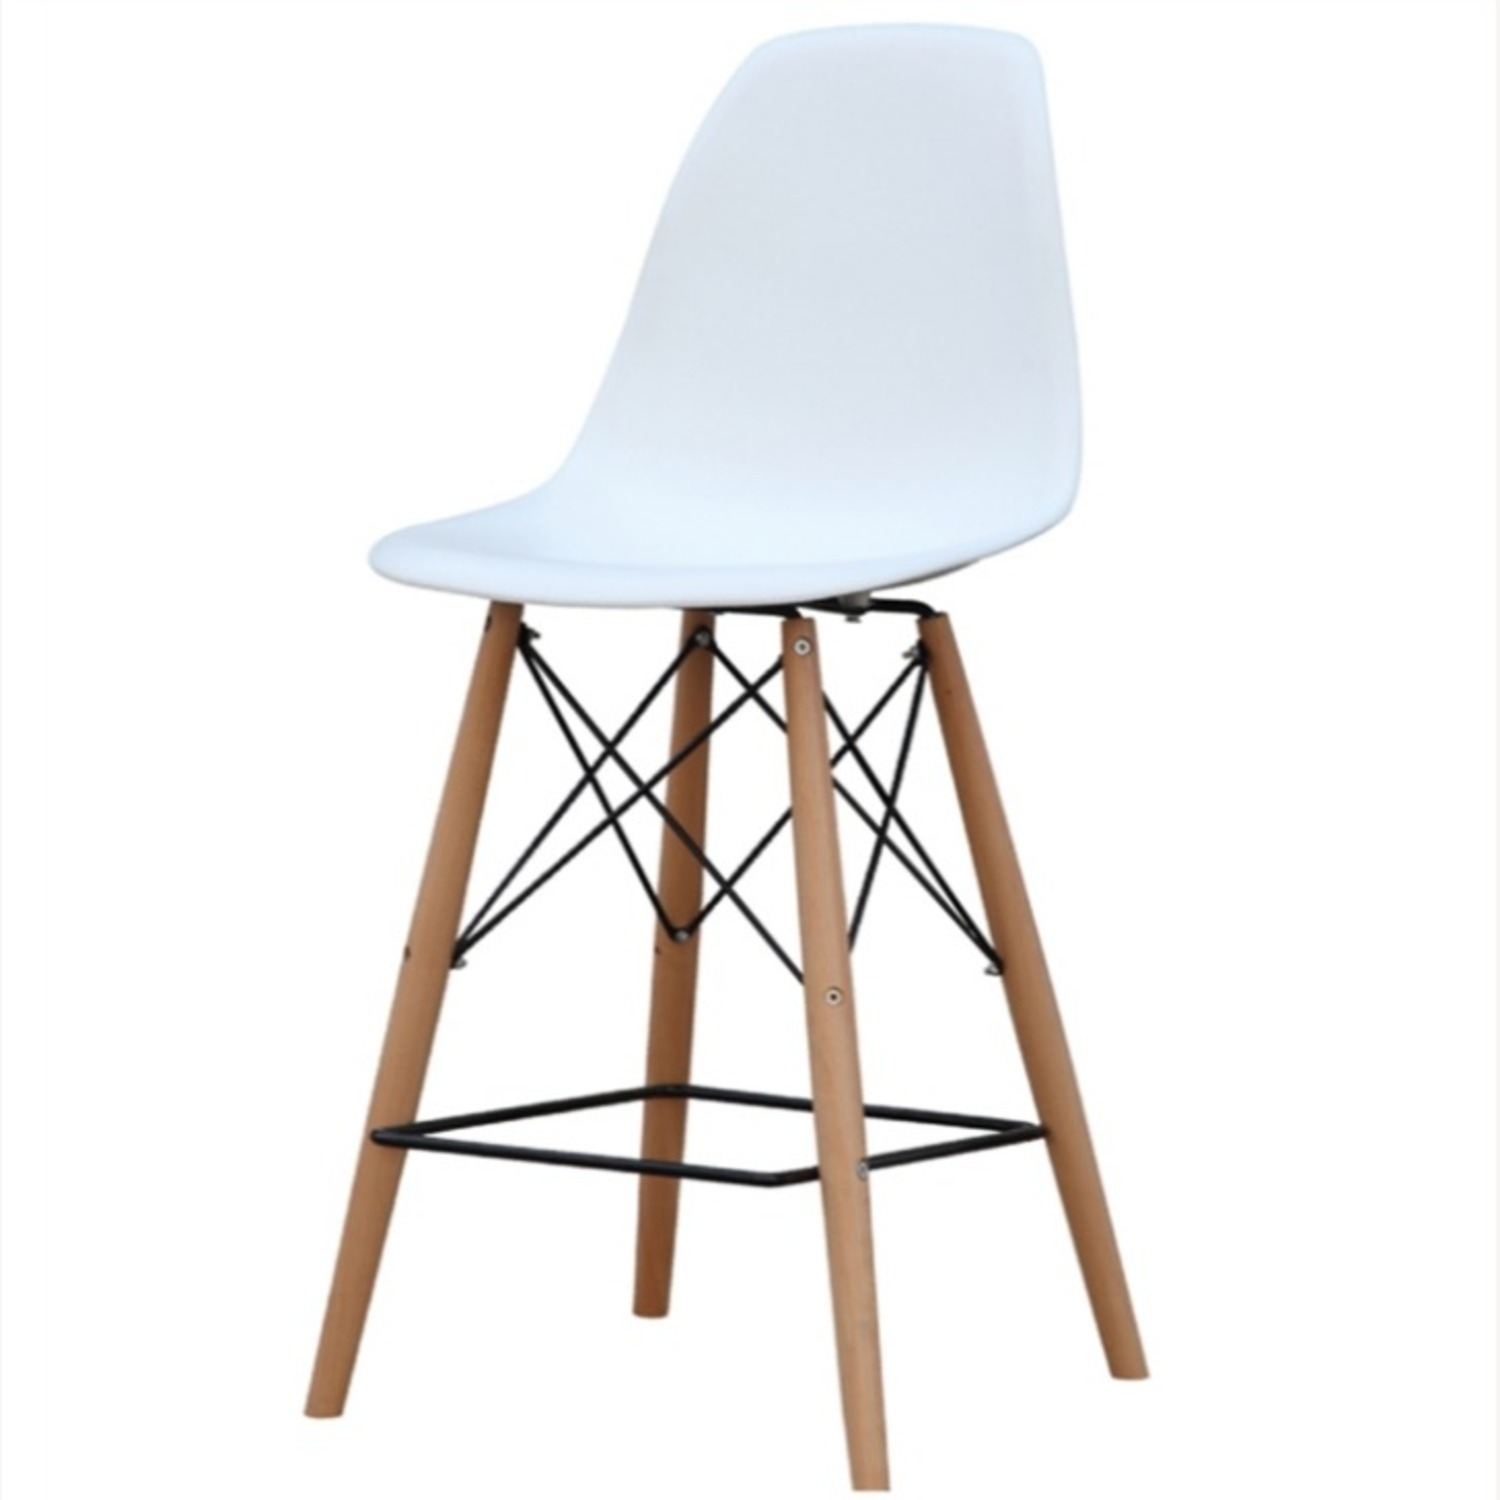 Counter Chair In White ABS Seat W/ Square Base - image-4